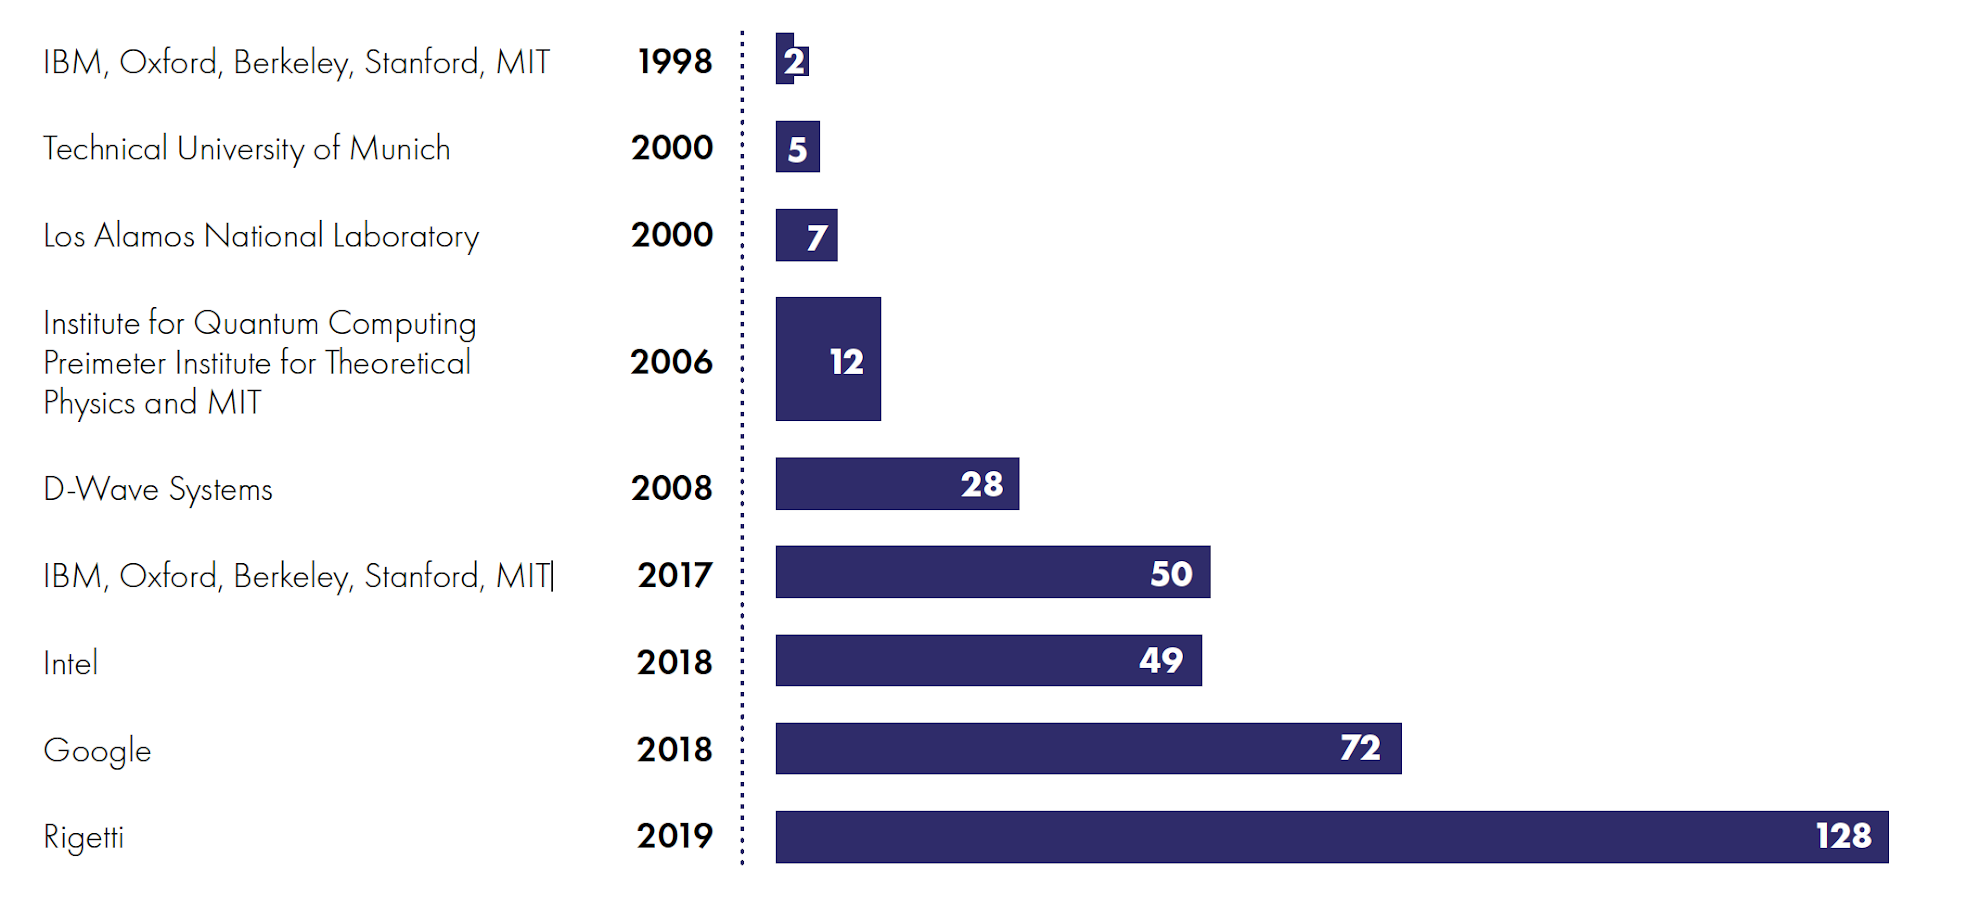 Quantum computing systems produced by organization(s) in qubits, between 1998 to 2019